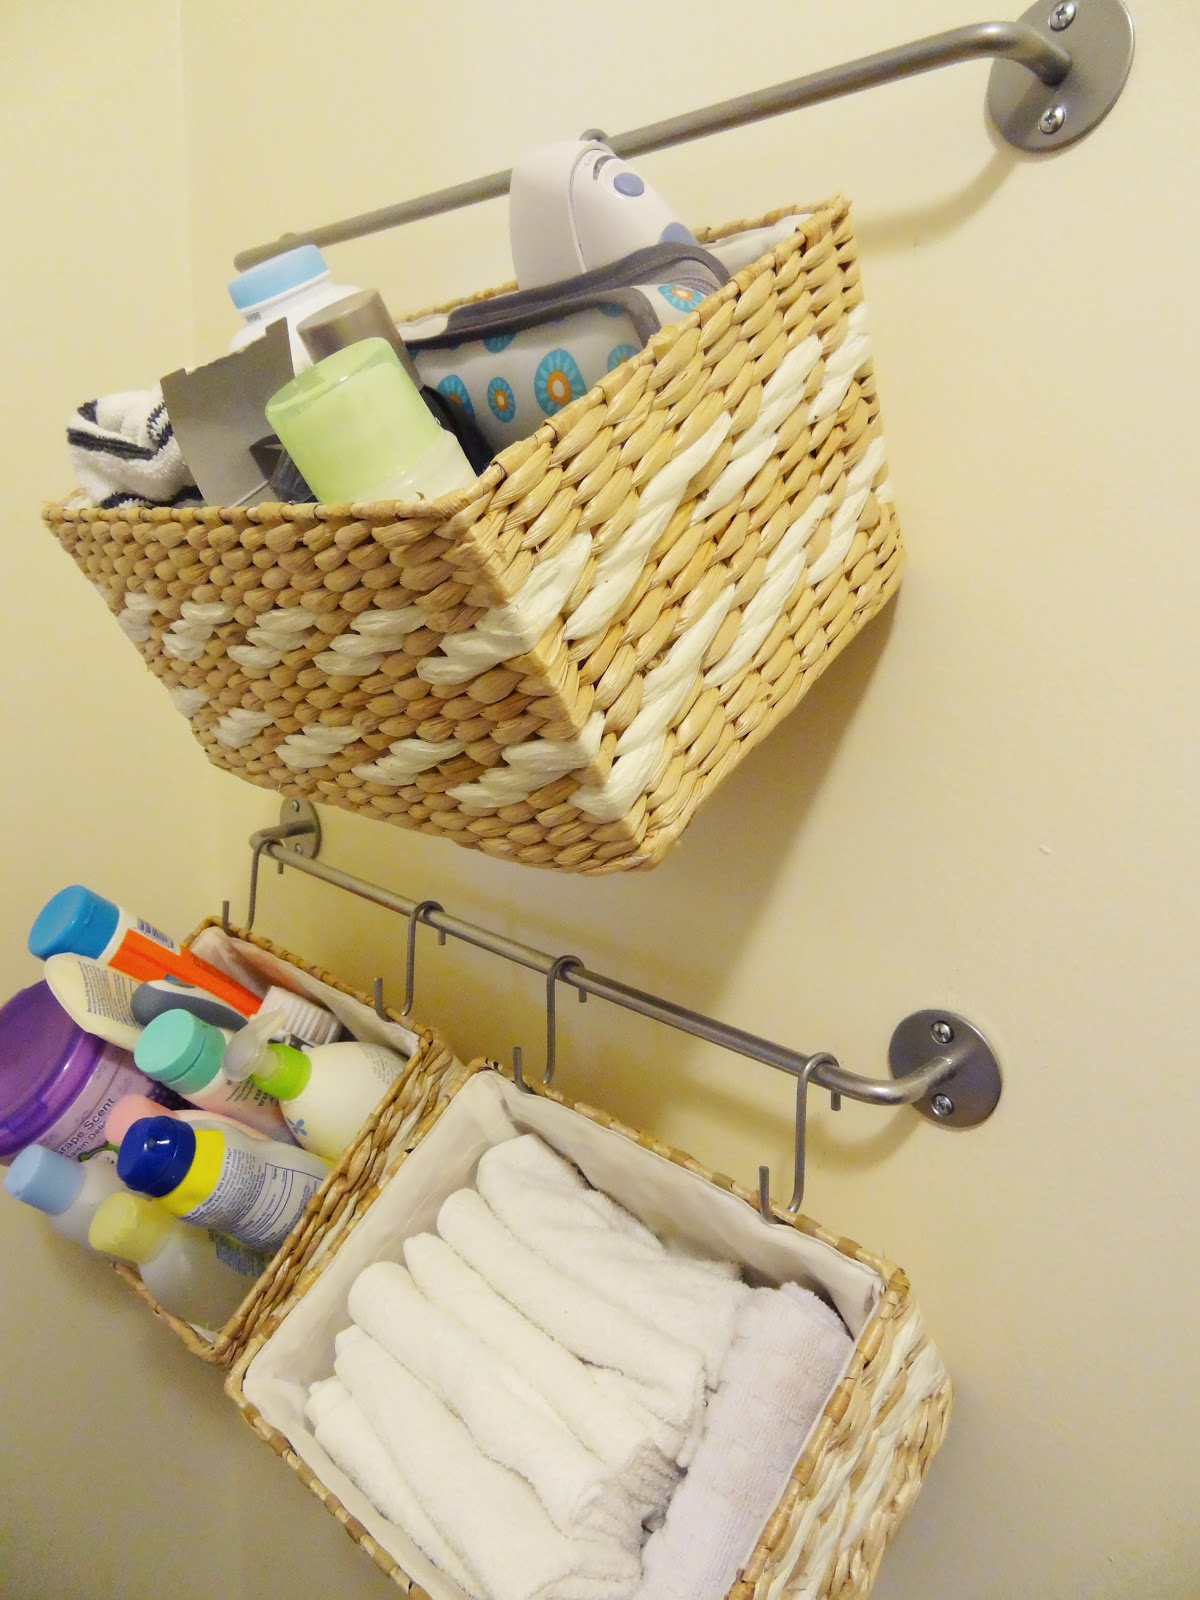 diy hanging bathroom storage baskets revamp homegoods. Black Bedroom Furniture Sets. Home Design Ideas